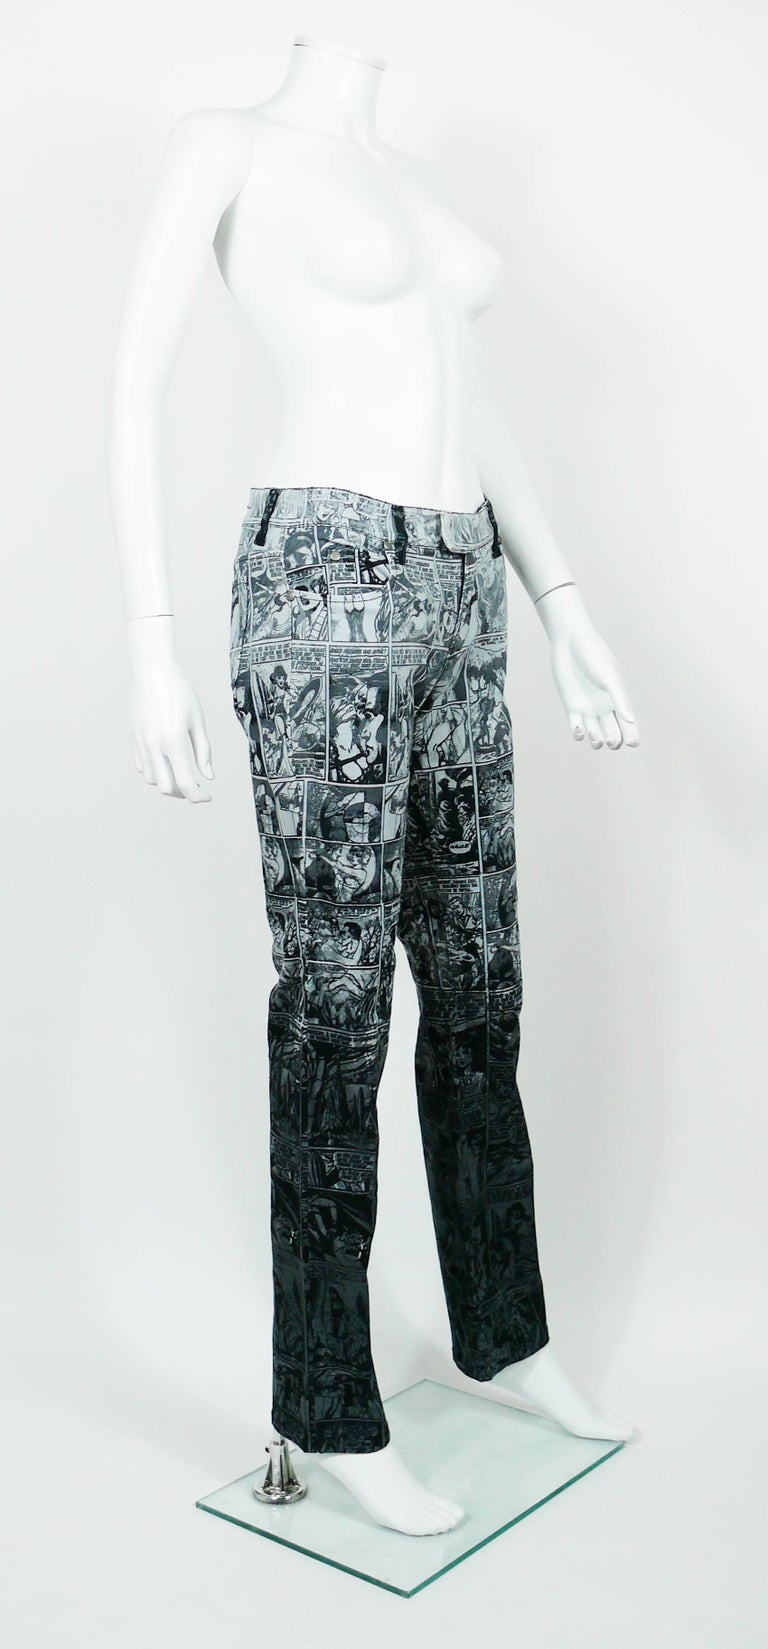 JEAN PAUL GAULTIER vintage pants trousers featuring an opulent black and grey